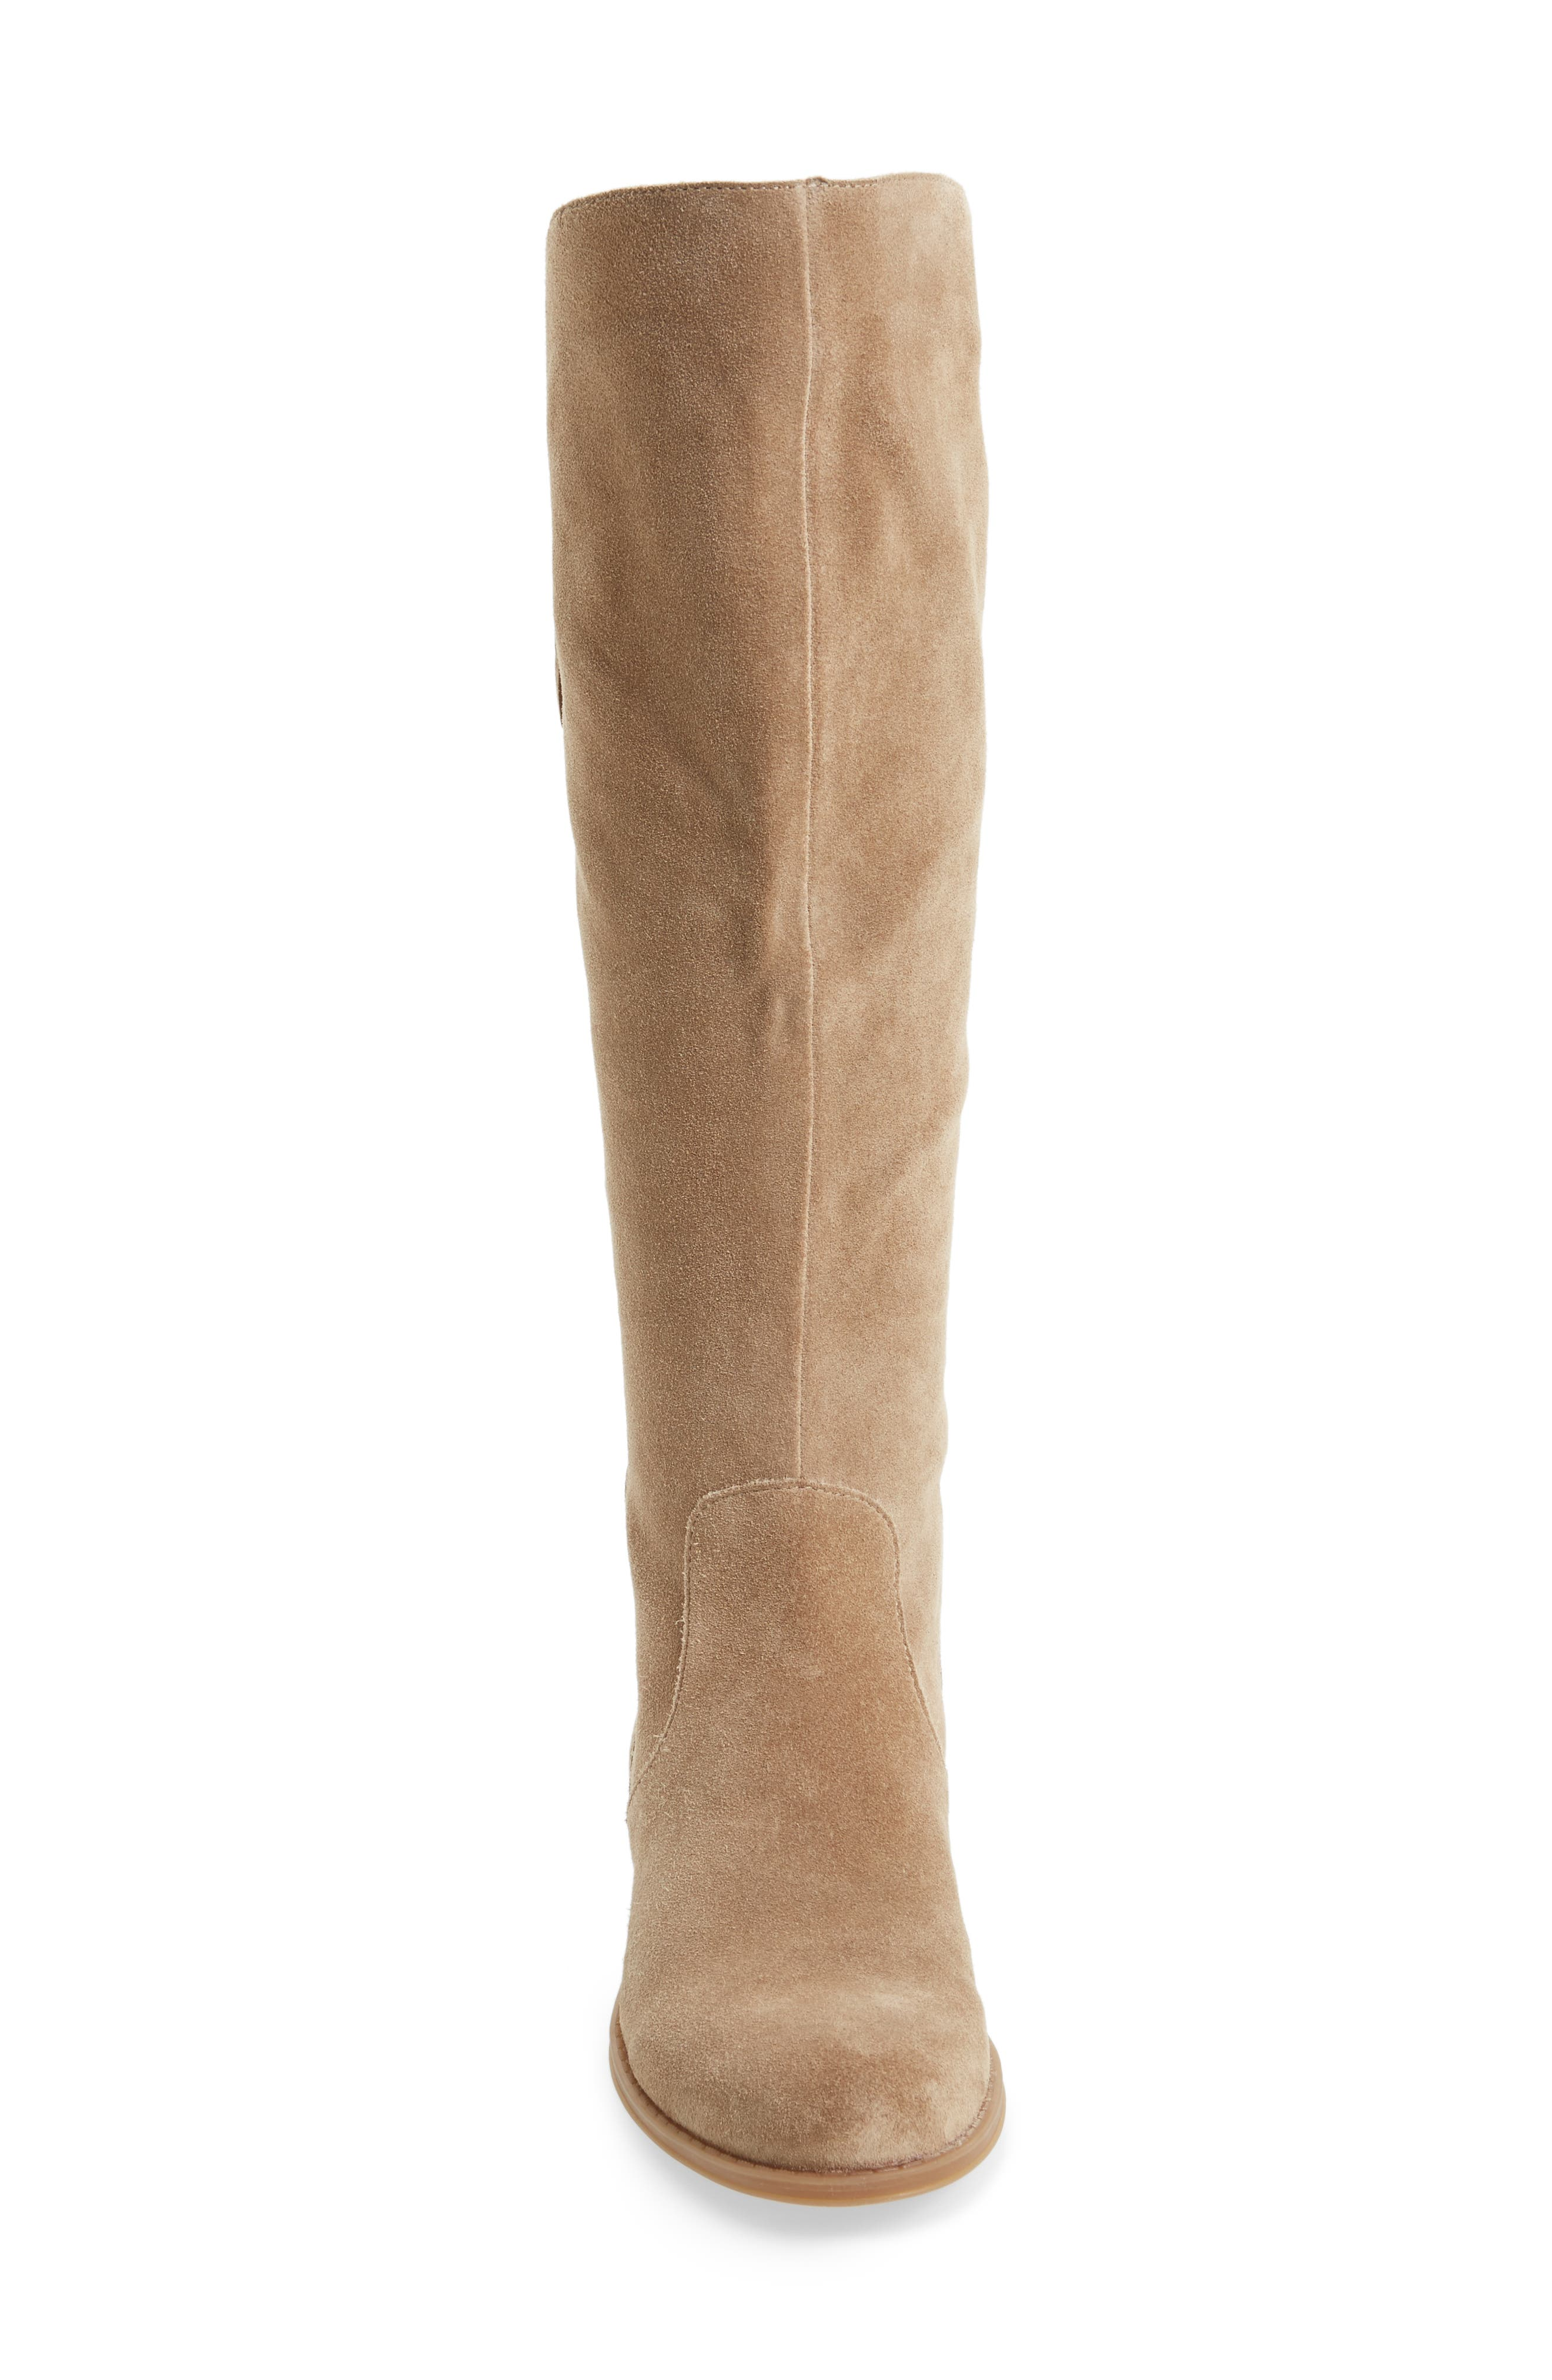 Jinnie Tall Boot,                             Alternate thumbnail 4, color,                             Oatmeal Suede